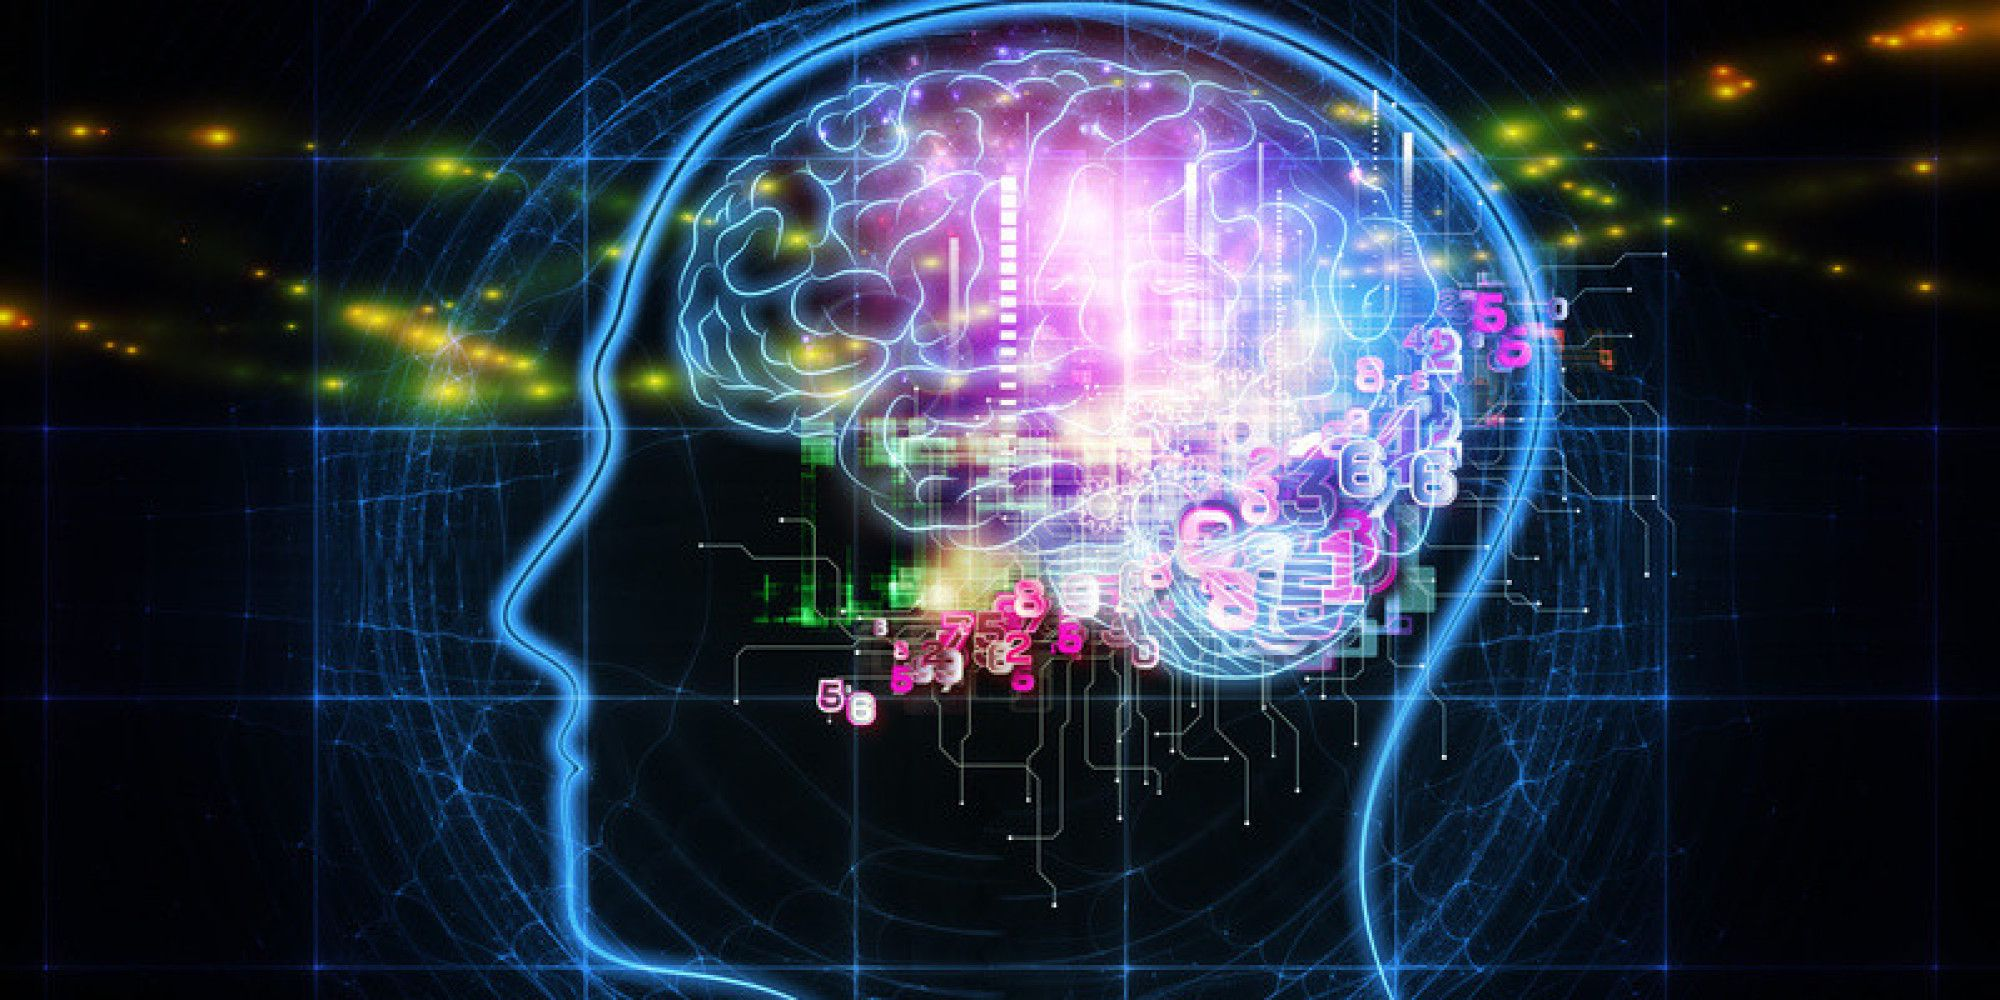 the effects of mind puzzle games Learn about the negative potential of video games and help we have focused mostly on the effects of playing violent games which i noting the mind.